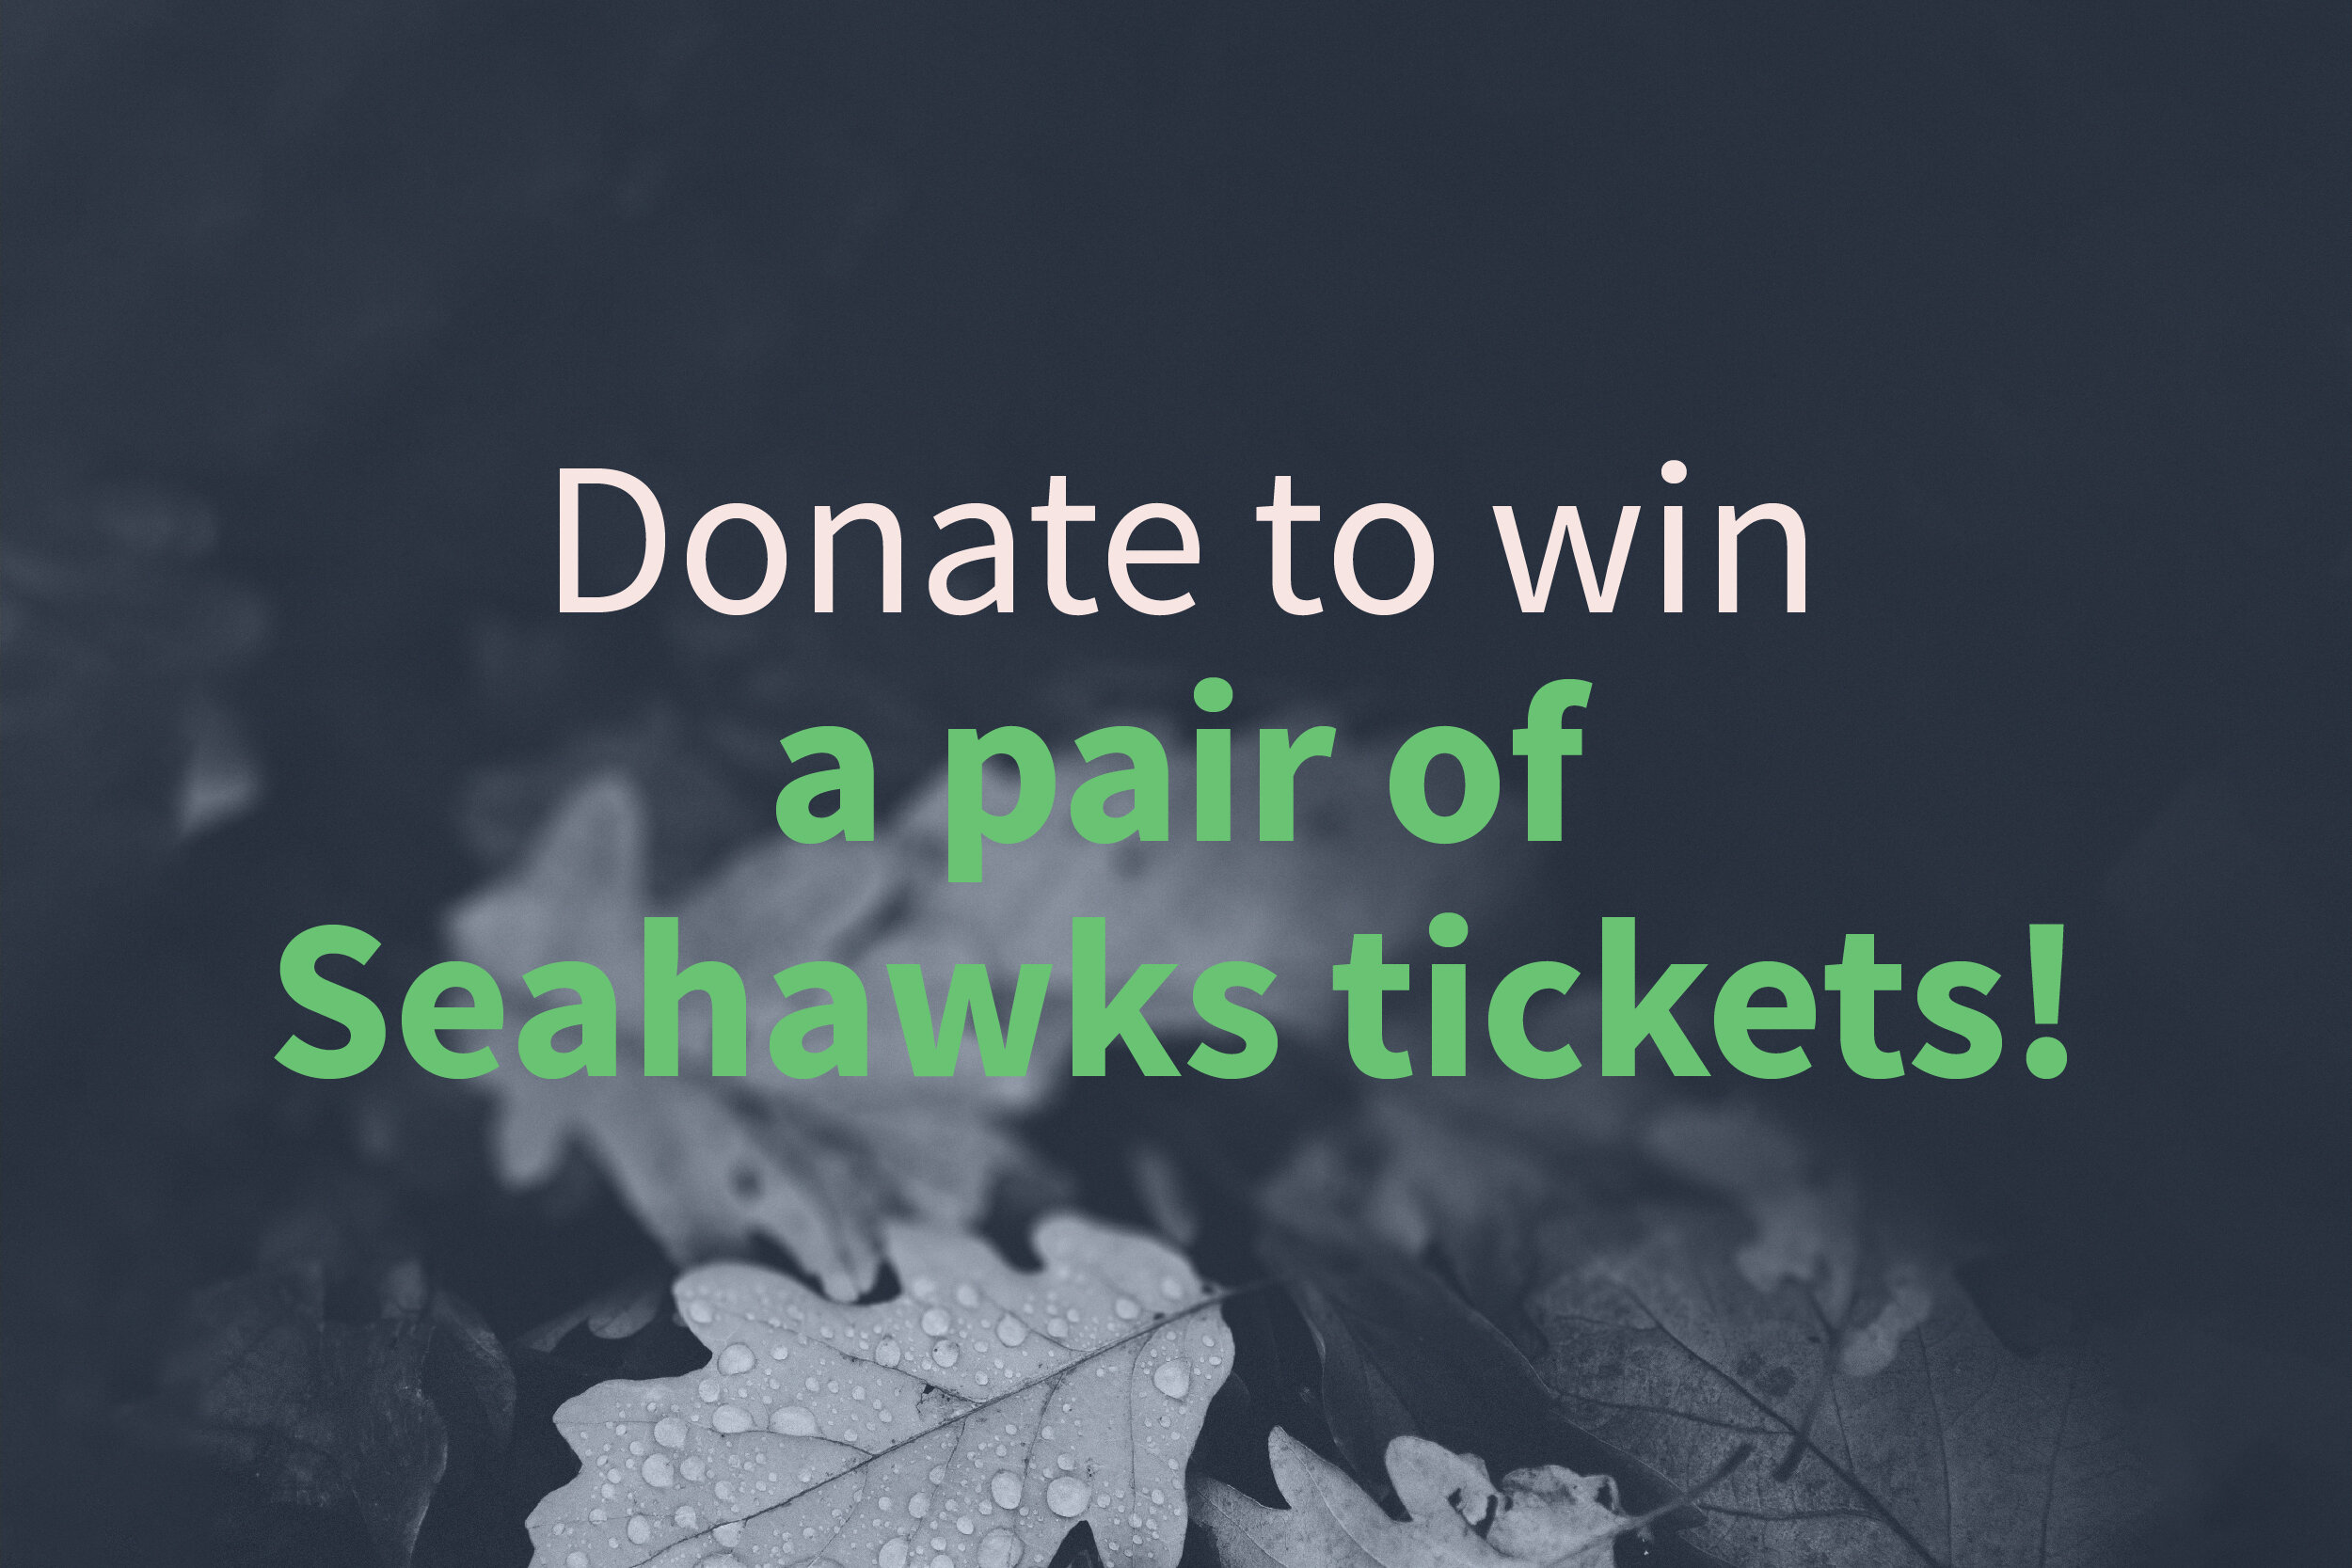 191003a donate_seahawks.jpg